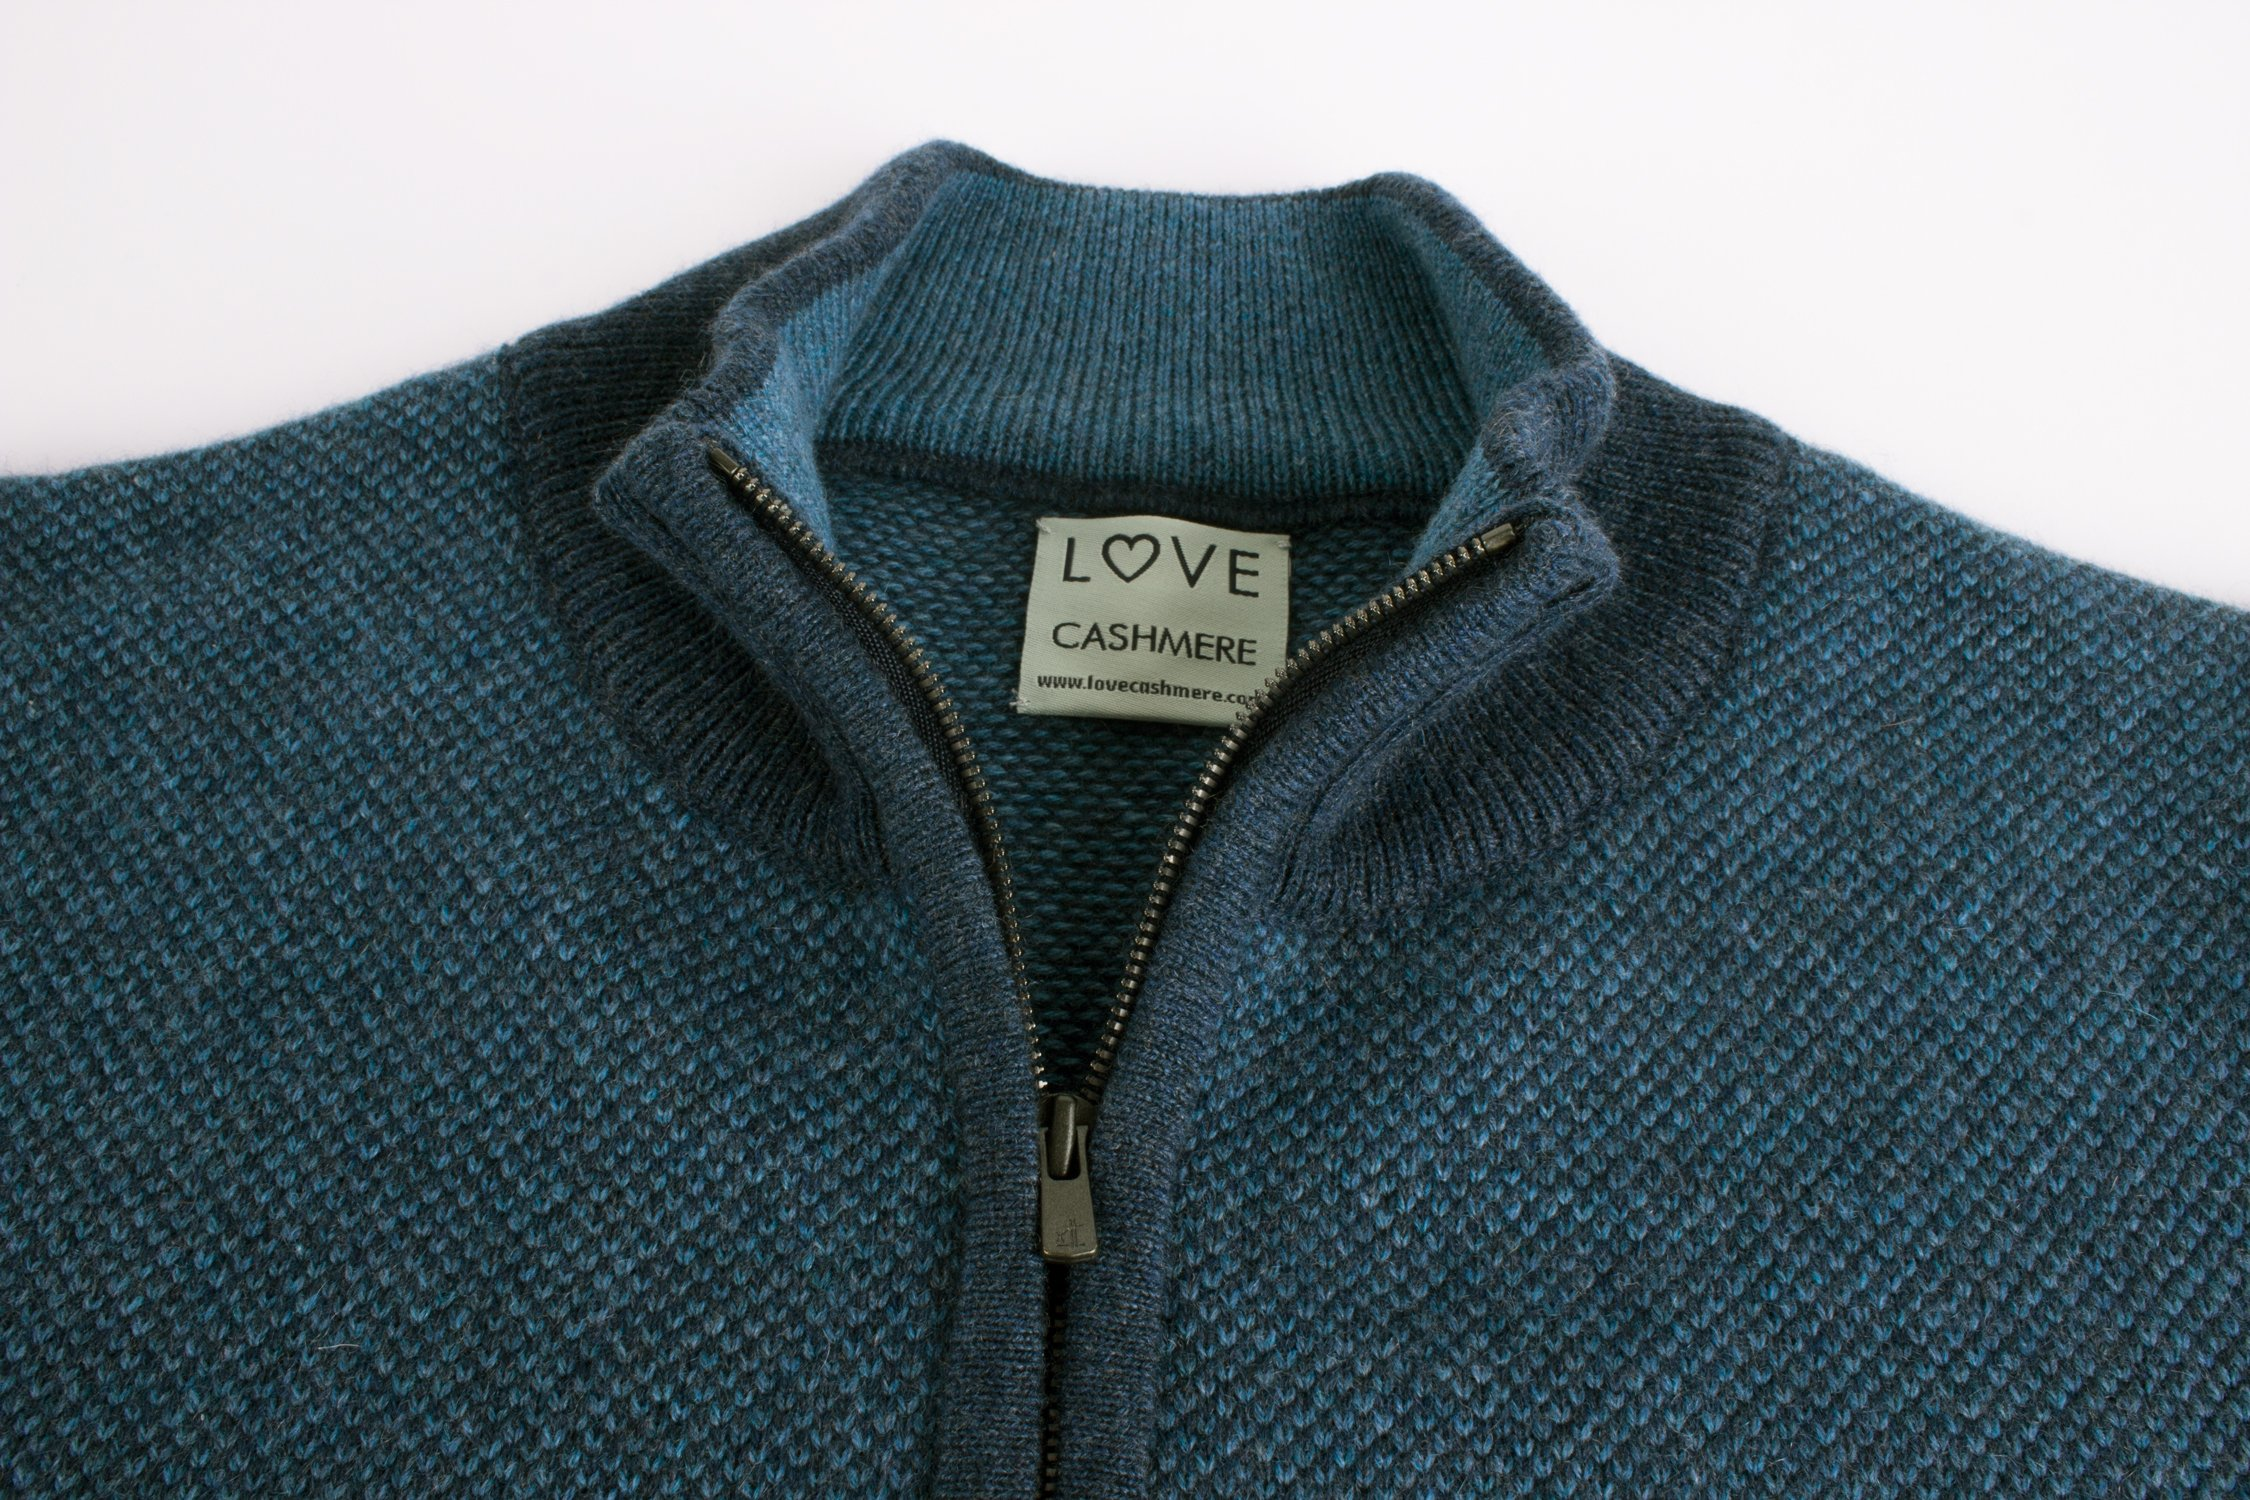 Ladies 100% Cashmere Zip Neck Oversize Sweater - Denim Blue Mix - made in Scotland by Love Cashmere by Love Cashmere (Image #2)